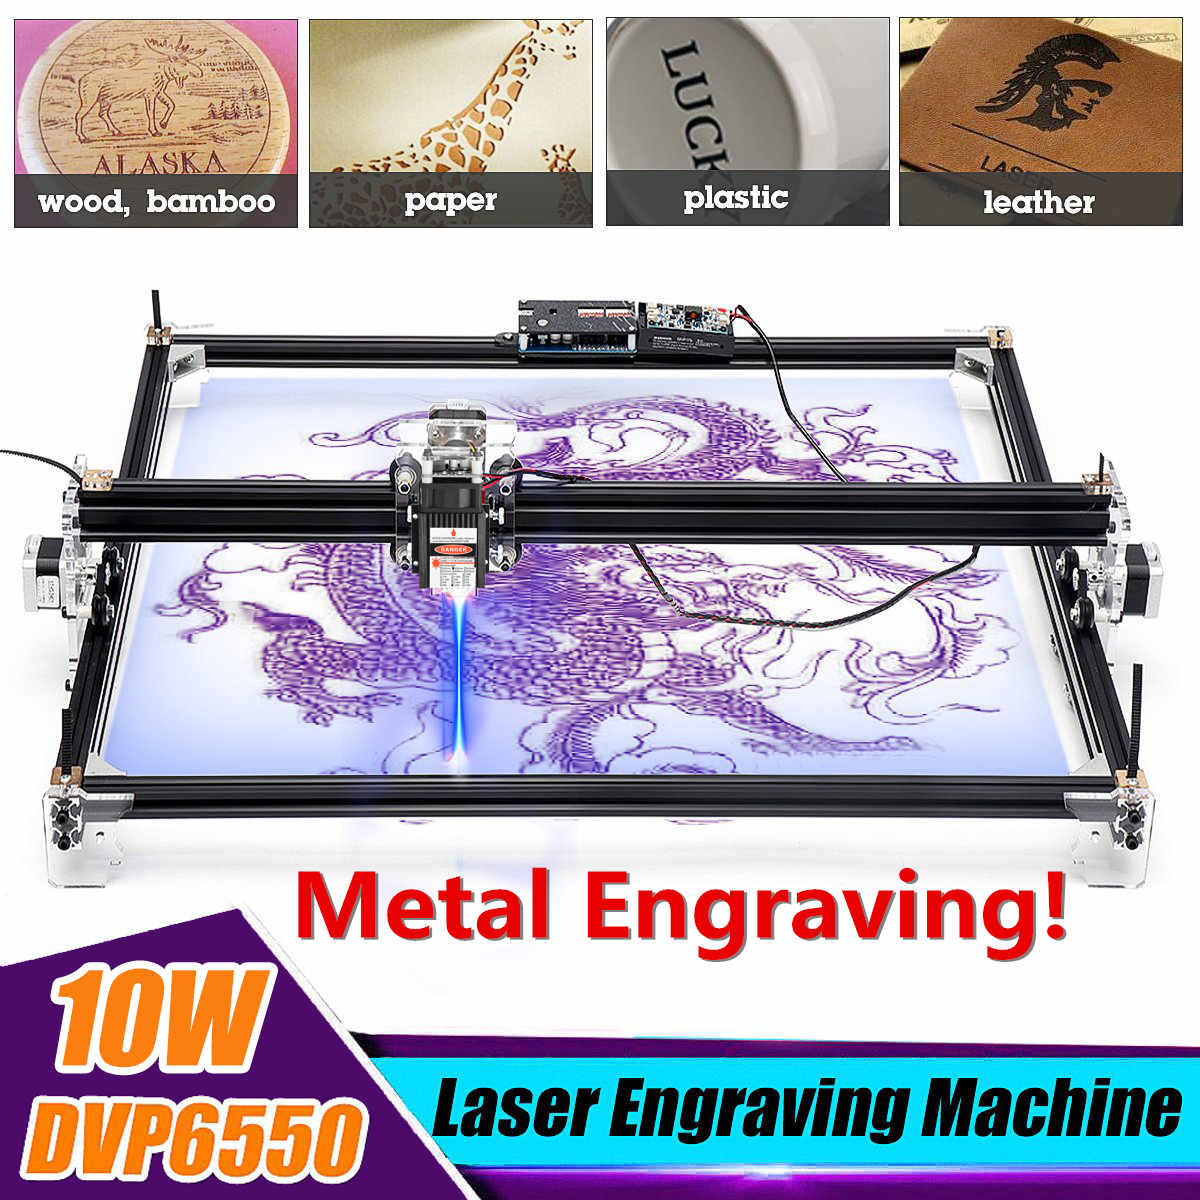 65*55cm Mini 10W Metal /5500MW Blue CNC Laser Engraving Machine 2 Axis 12V DIY Home Engraver Desktop Wood Router/Cutter/Printer